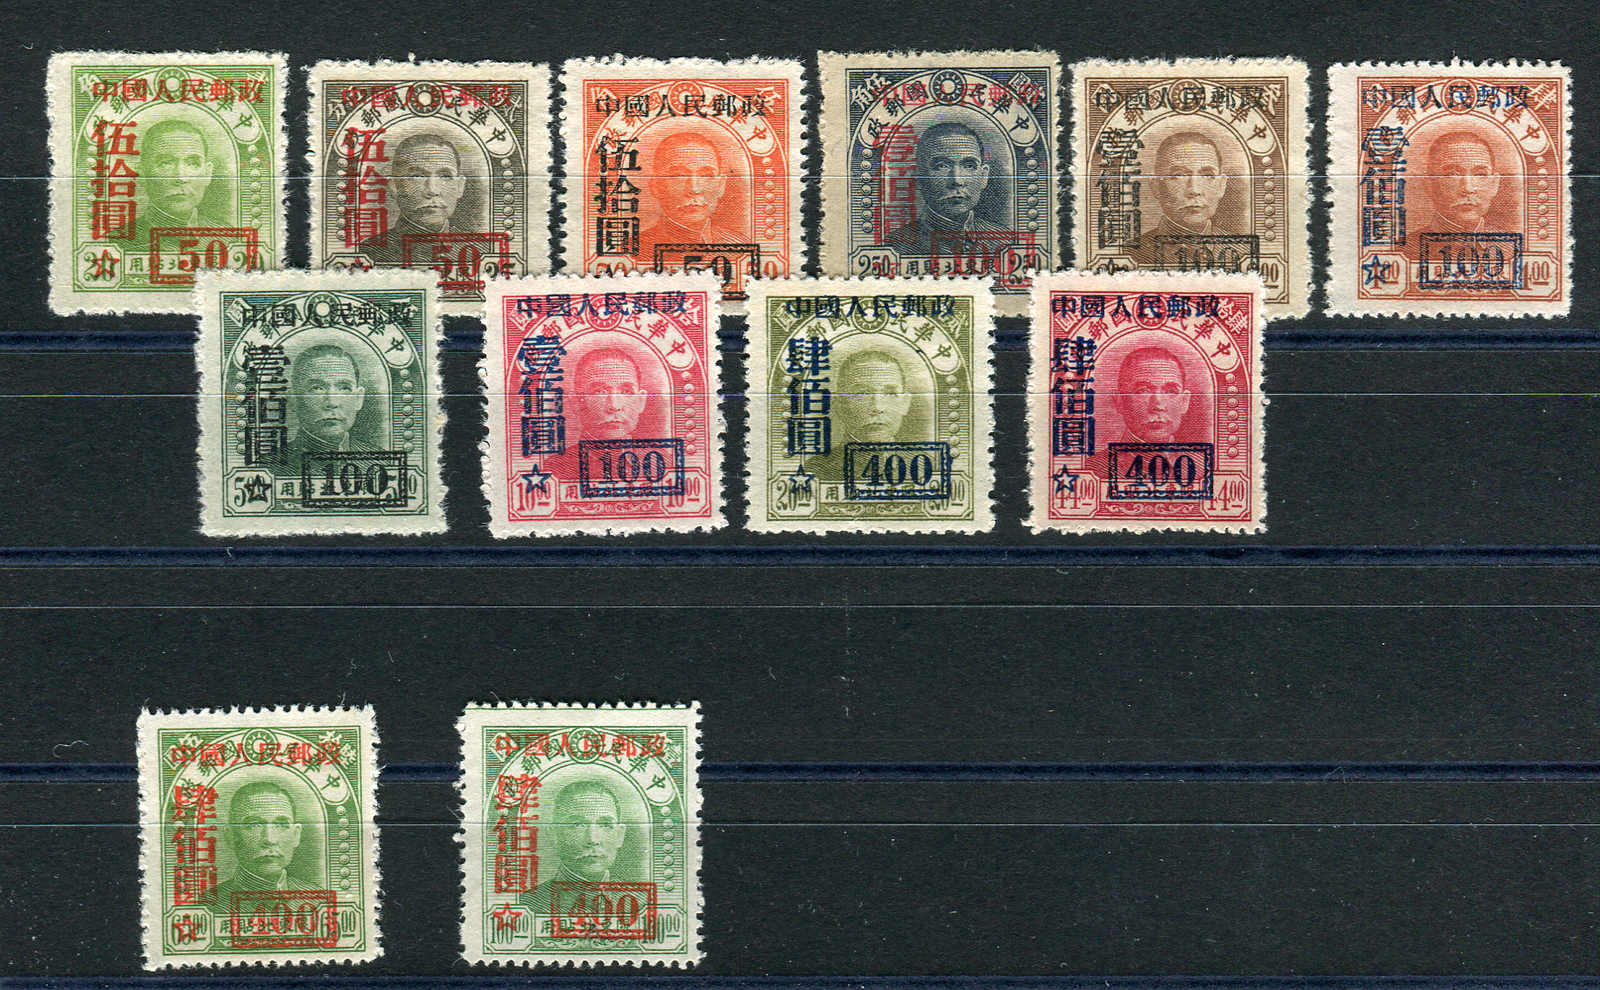 Lot 4244 - Worldwide A-Z People's Republic of China -  Auktionshaus Schlegel 26 Public Auction